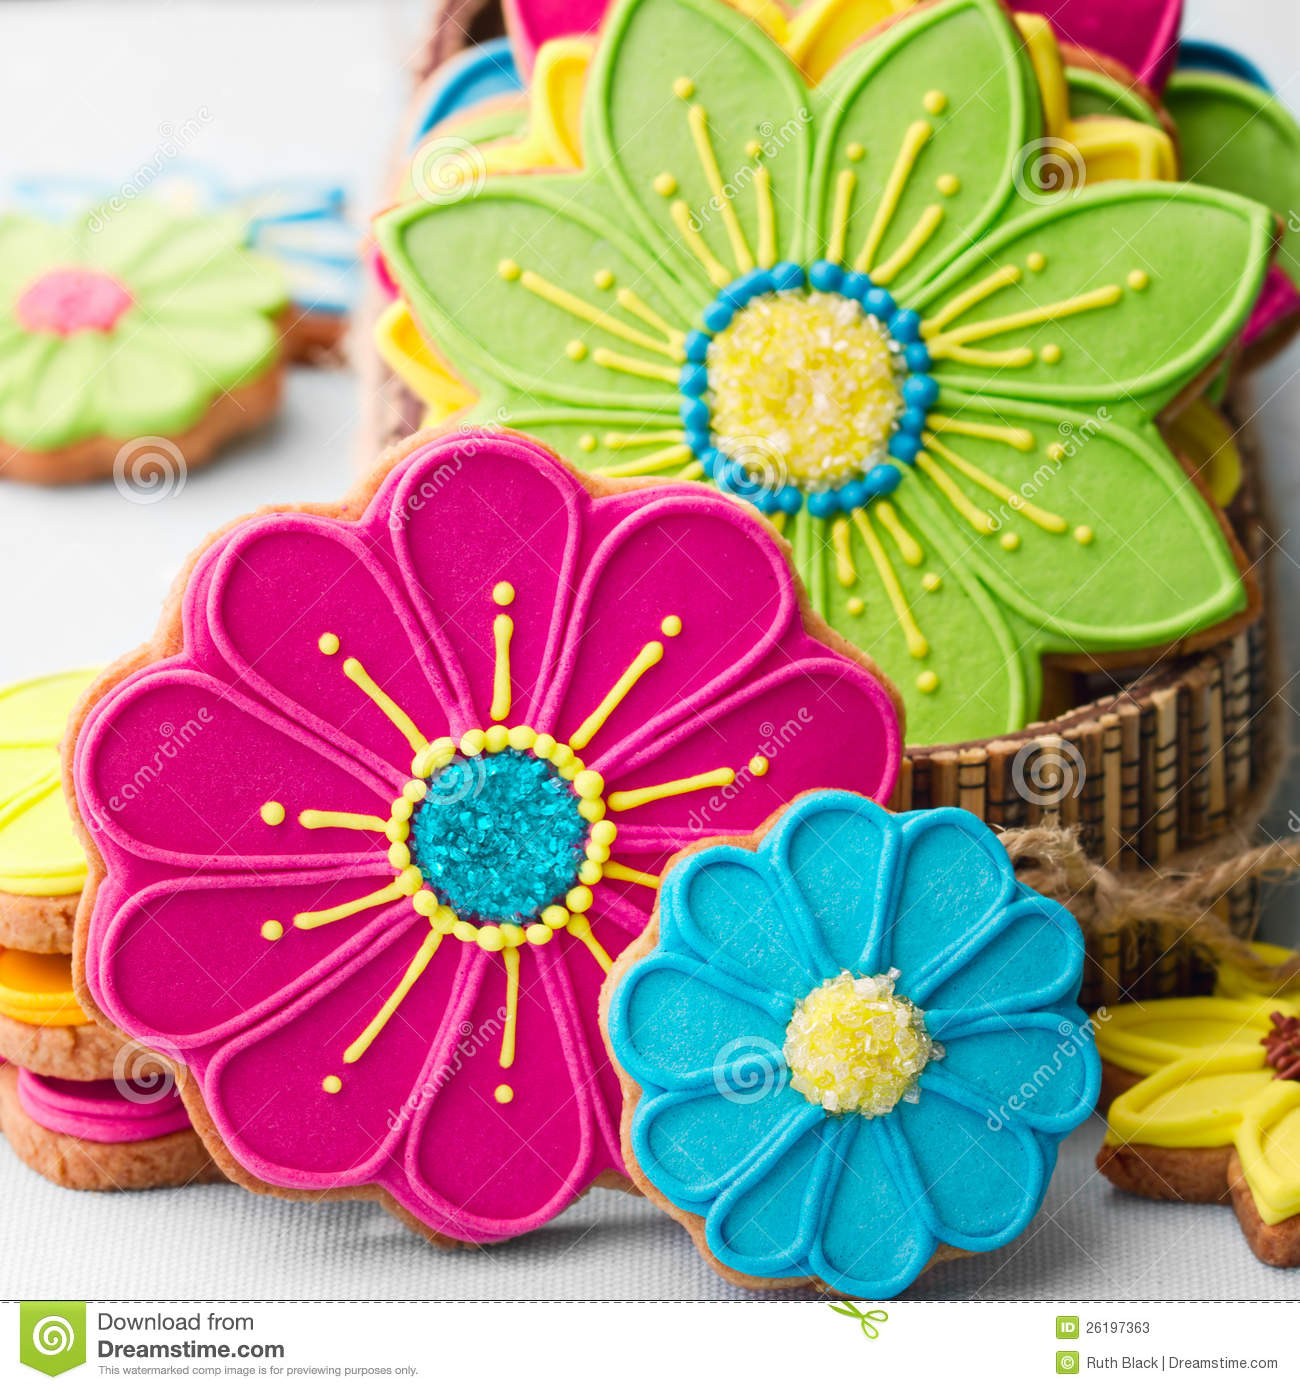 Flower Cookies Stock Photos - Image: 26197363